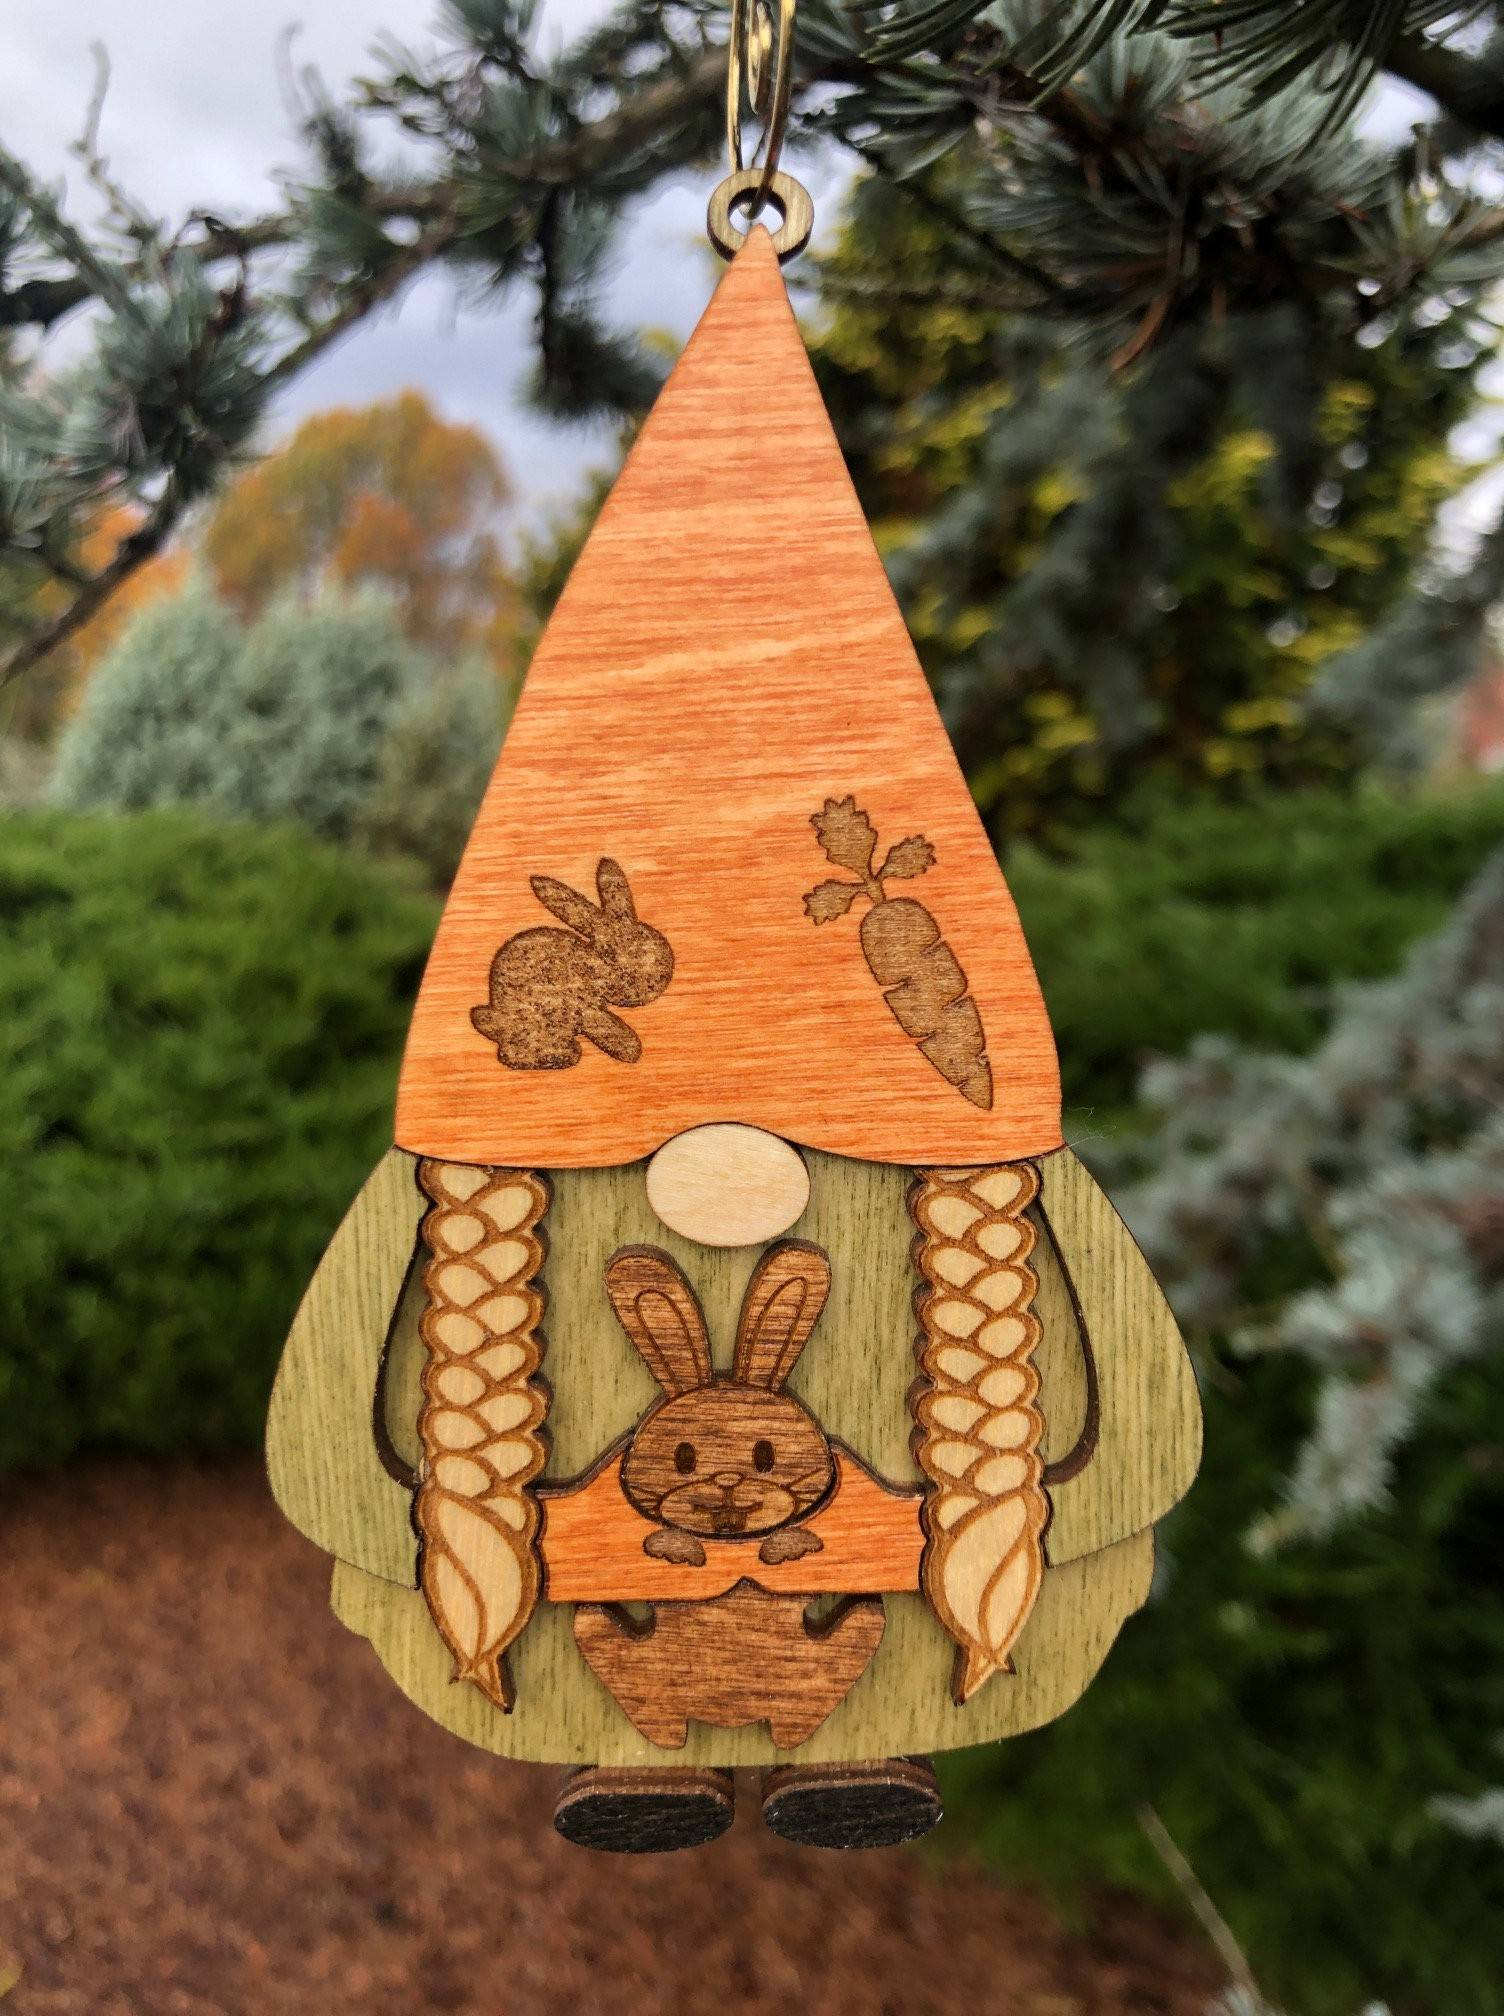 Gnome with Bunny 3D Wood Ornament